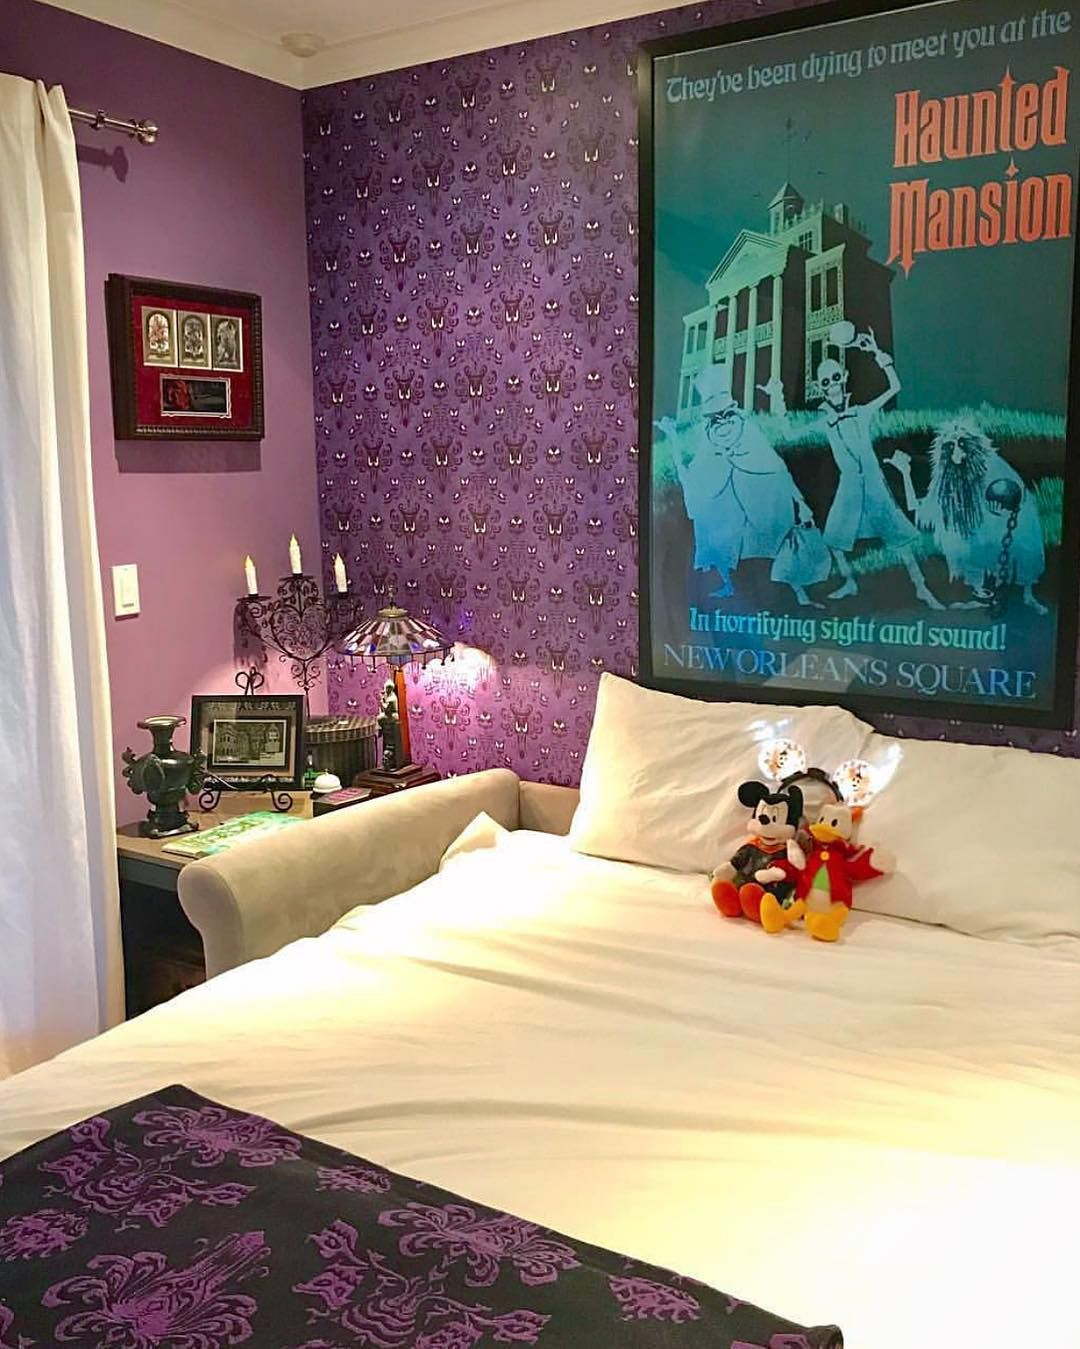 75 best Extra bed room haunted mansion images on Pinterest ...  Haunted Mansion Themed Bedroom